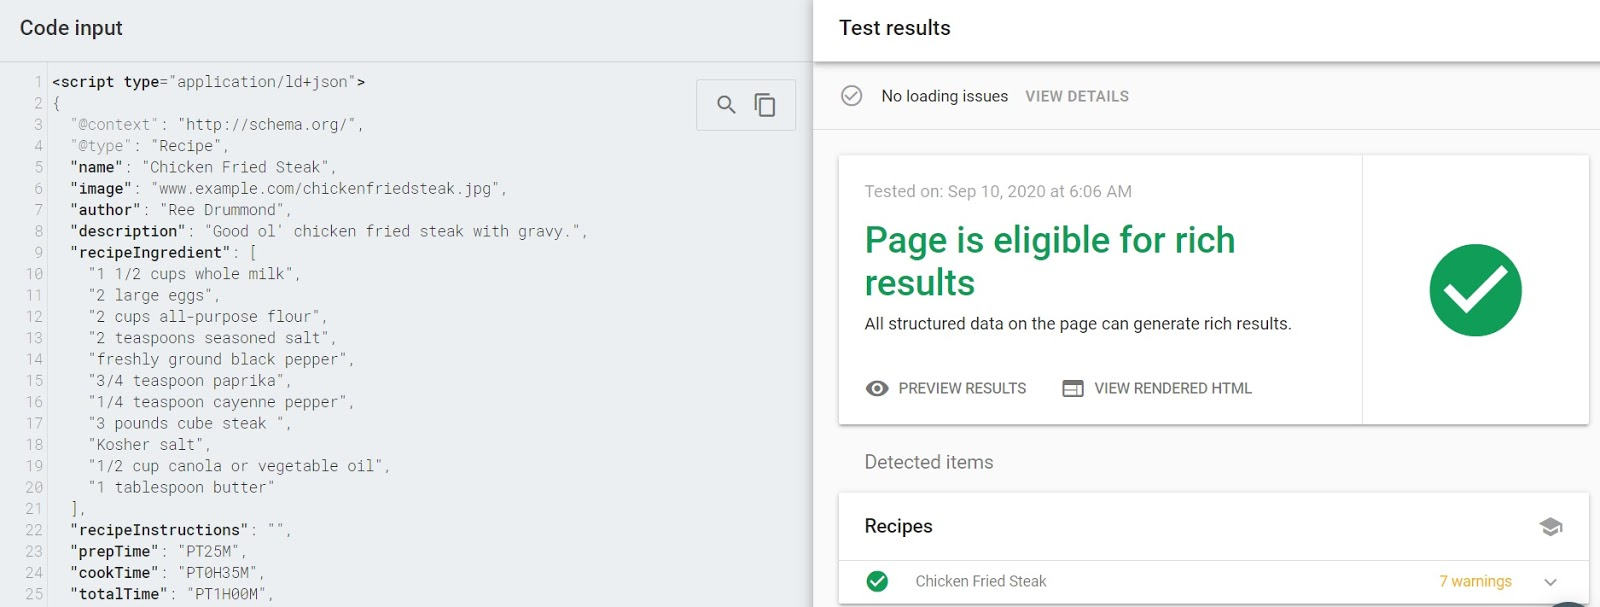 You will know the code is working properly if the test result says that the page is eligible for rich results.